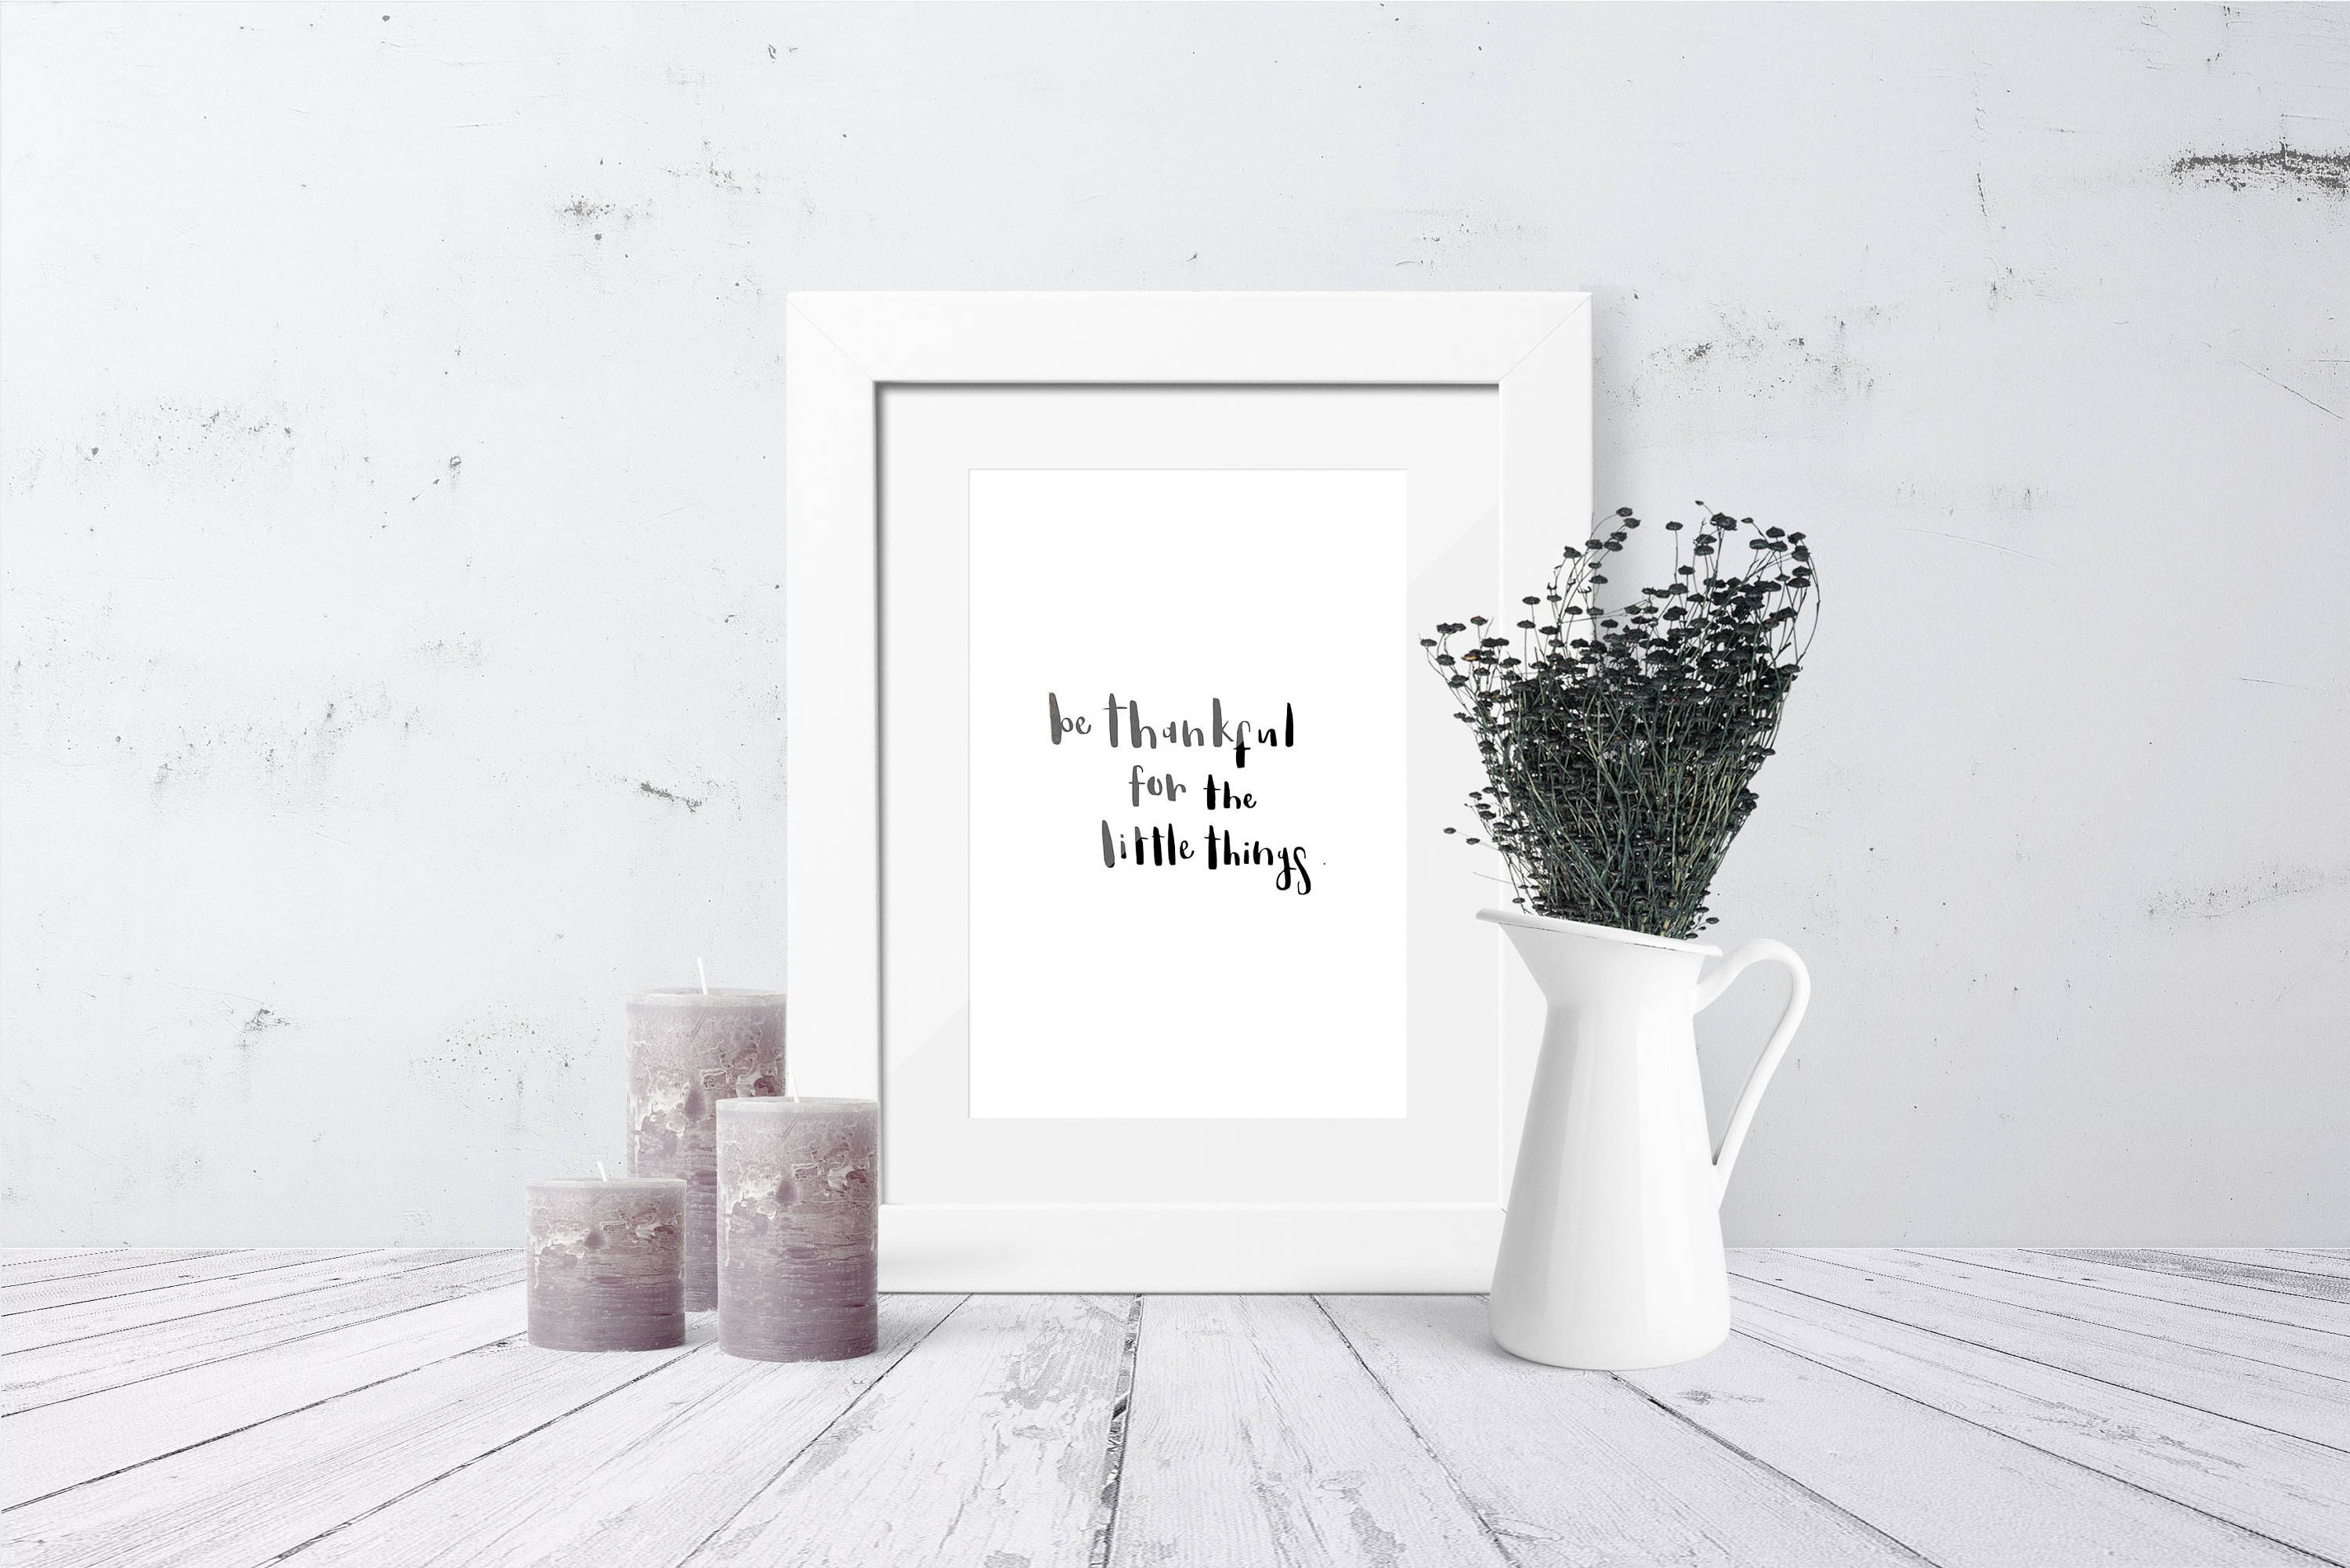 Items Similar To Positive Affirmation Wall Decor Print Be Thankful For The Little Things Positive Quote Print Gallery Wall Decor On Etsy Calligraphy Print Motivational Wall Art Gallery Wall Decor